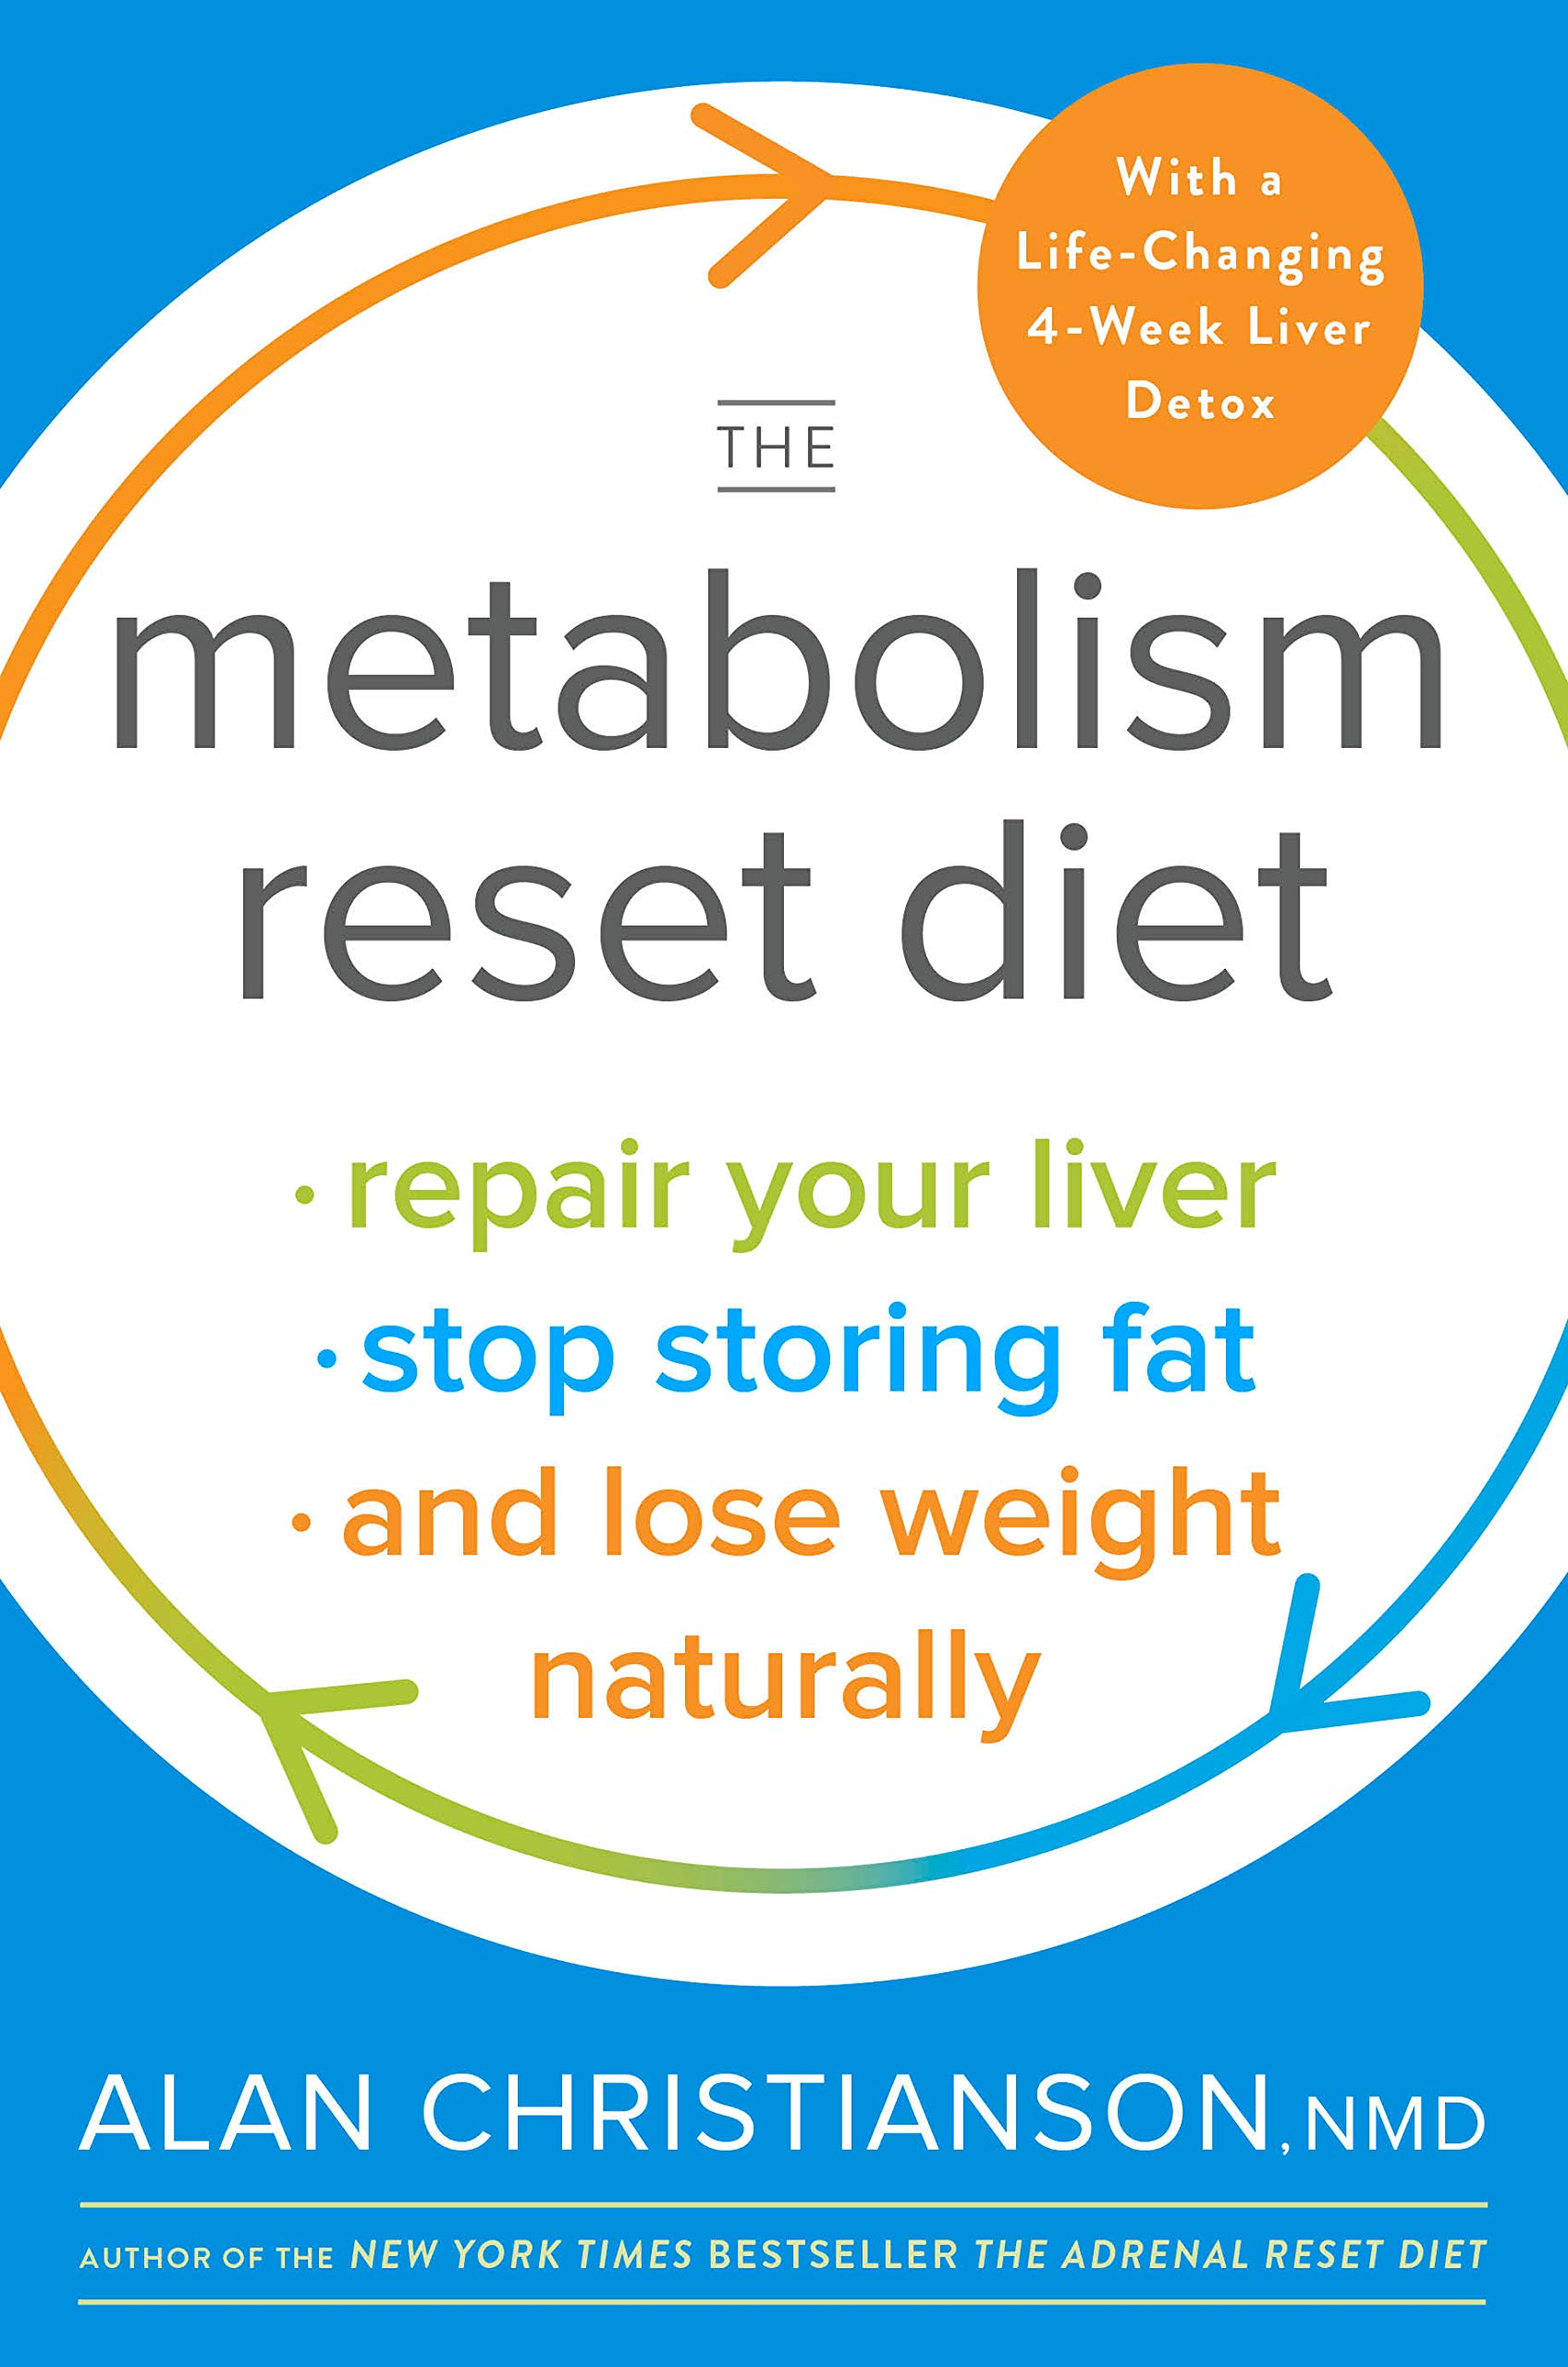 what is the metabolism reset diet?